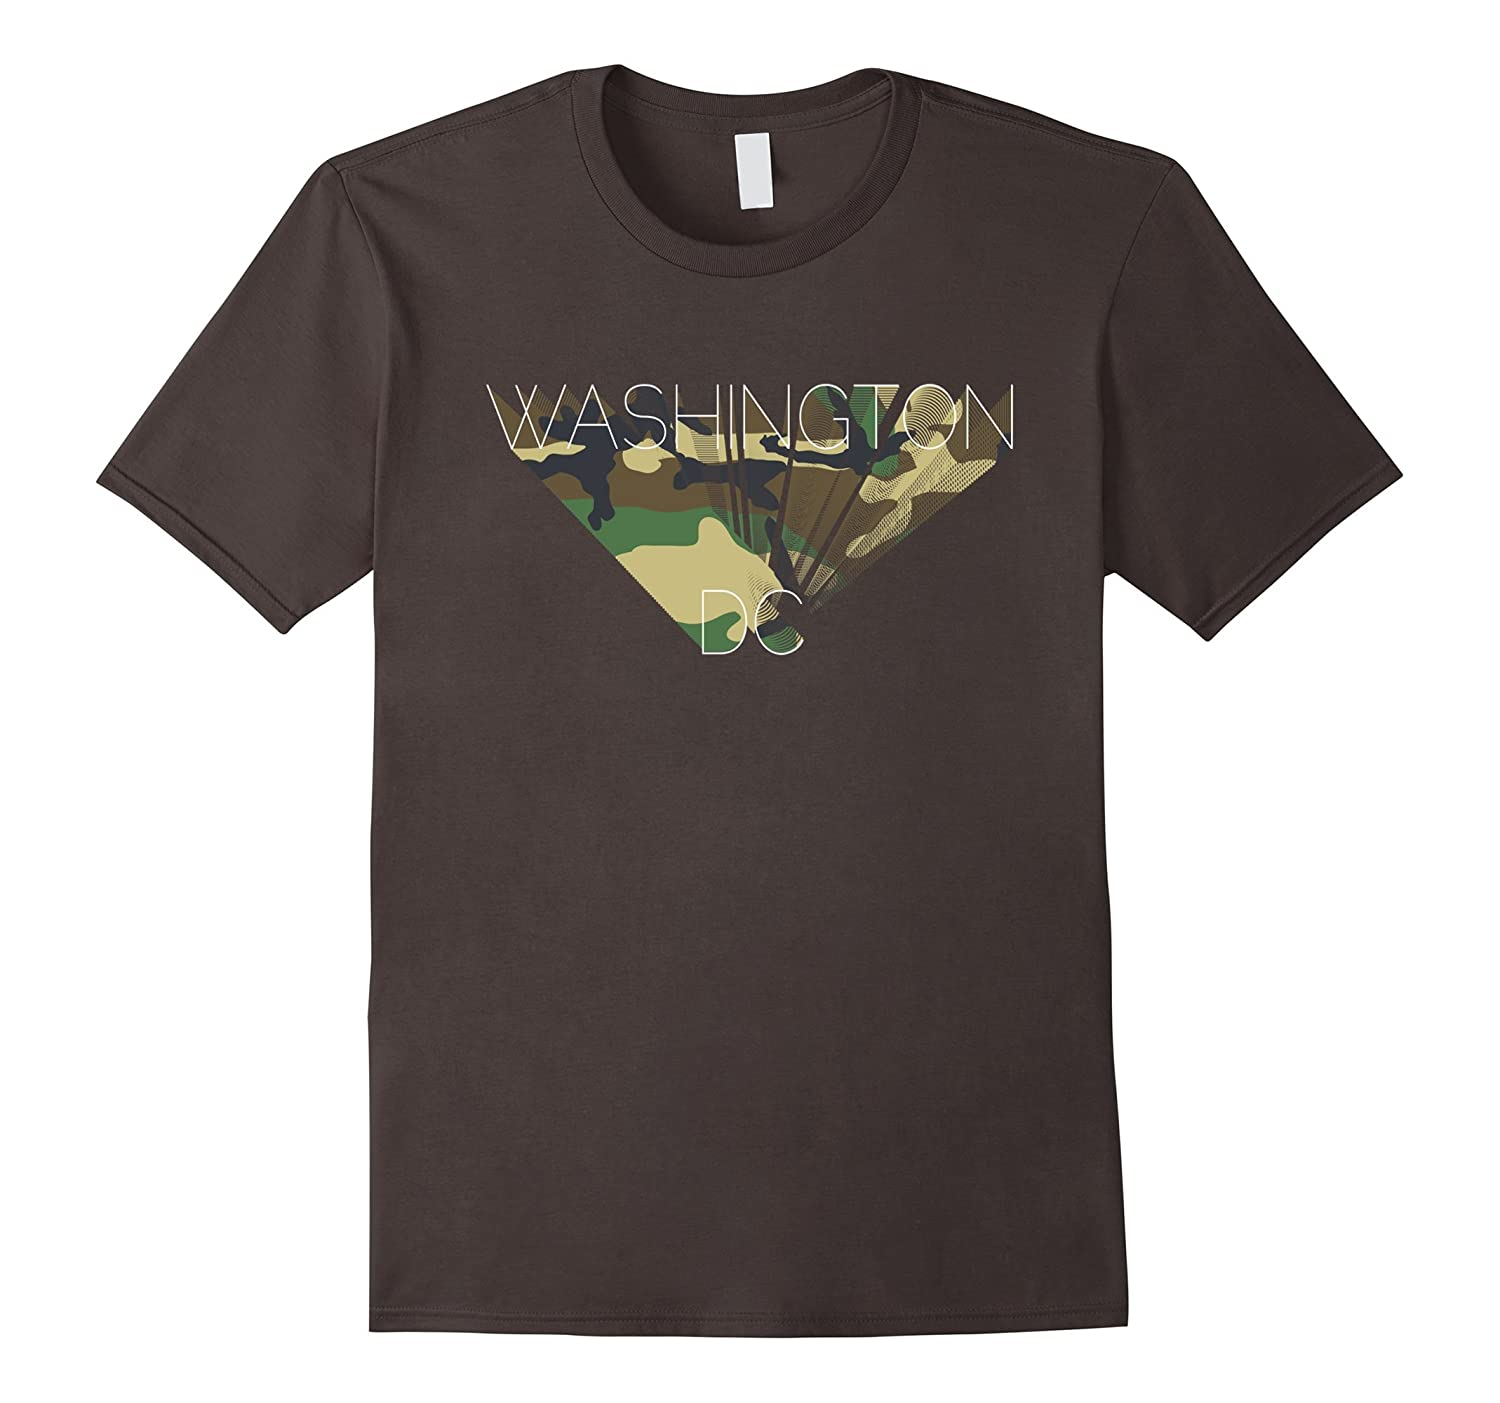 Washington DC Camouflage Graphics T-Shirt DC Camo Tee-Shirt